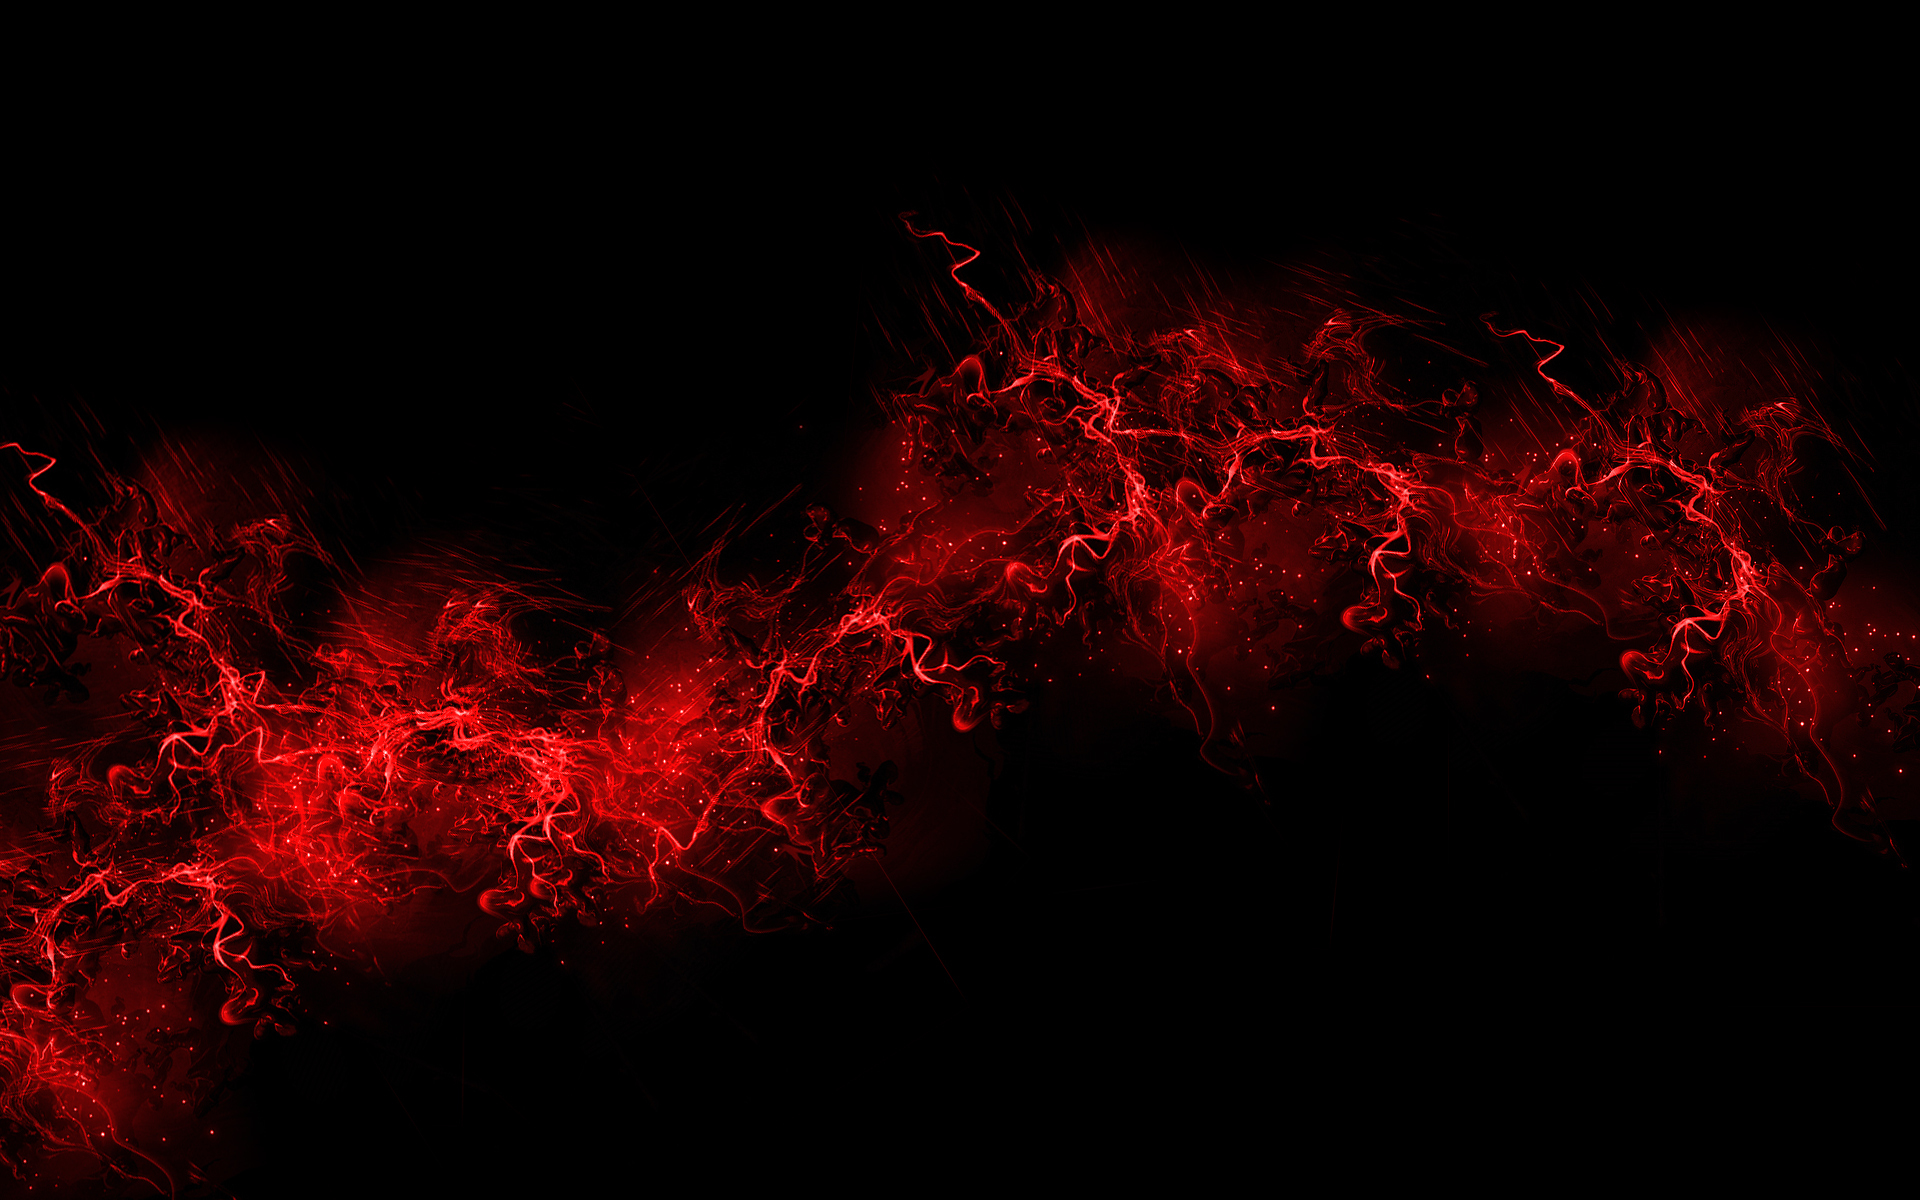 Wallpaper black background red color paint explosion burst red 1920x1200